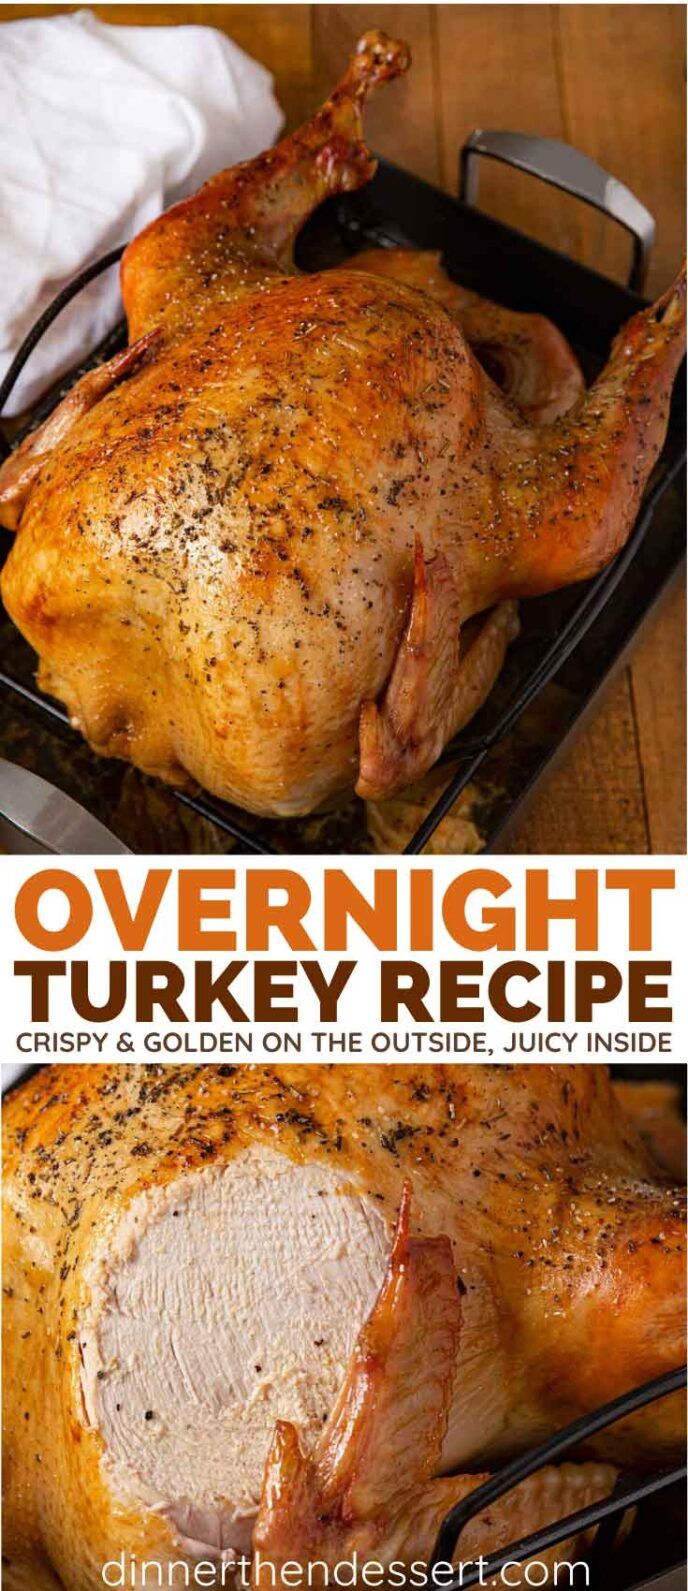 How to Cook Turkey Overnight collage